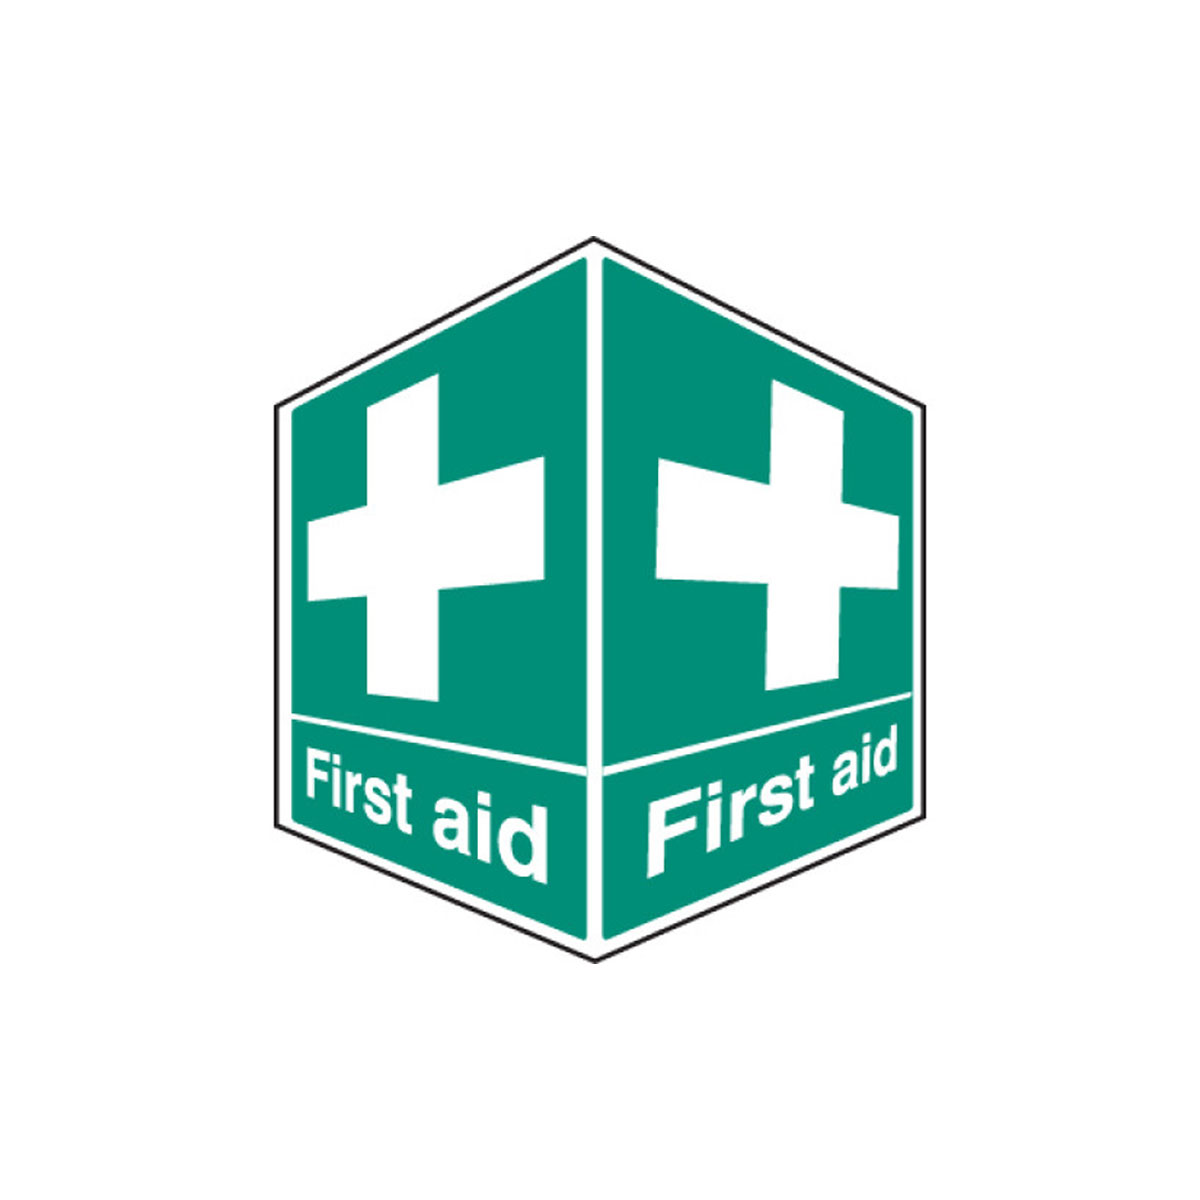 Projecting First Aid Rigid Plastic Safety Sign